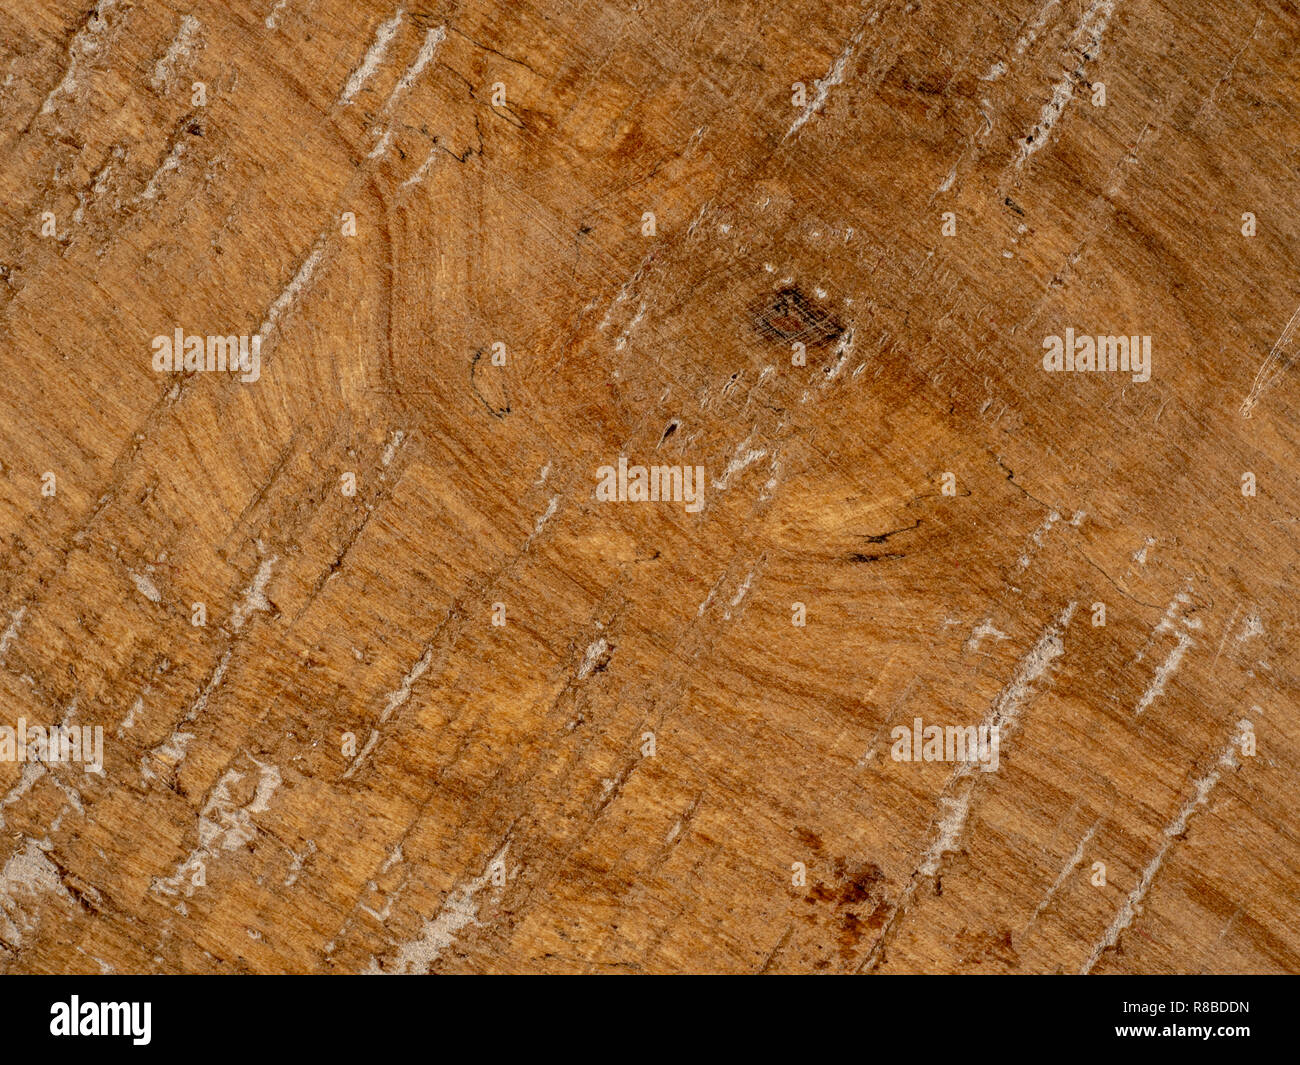 Old wooden brown plank with grooves and a weathered look. - Stock Image